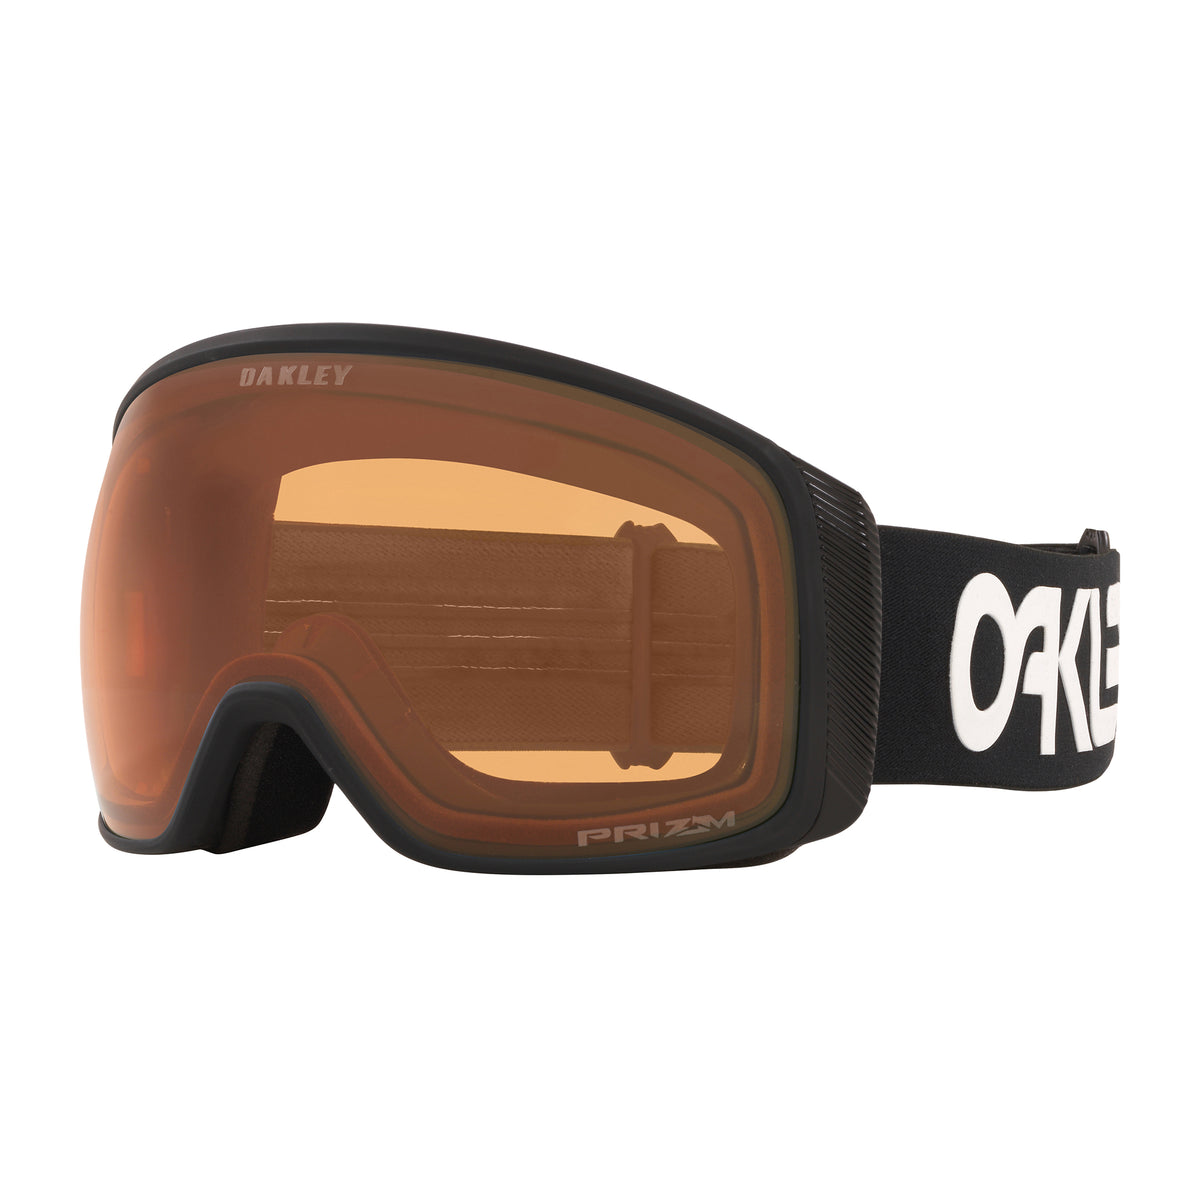 Oakley FLIGHT TRACKER XL Goggle